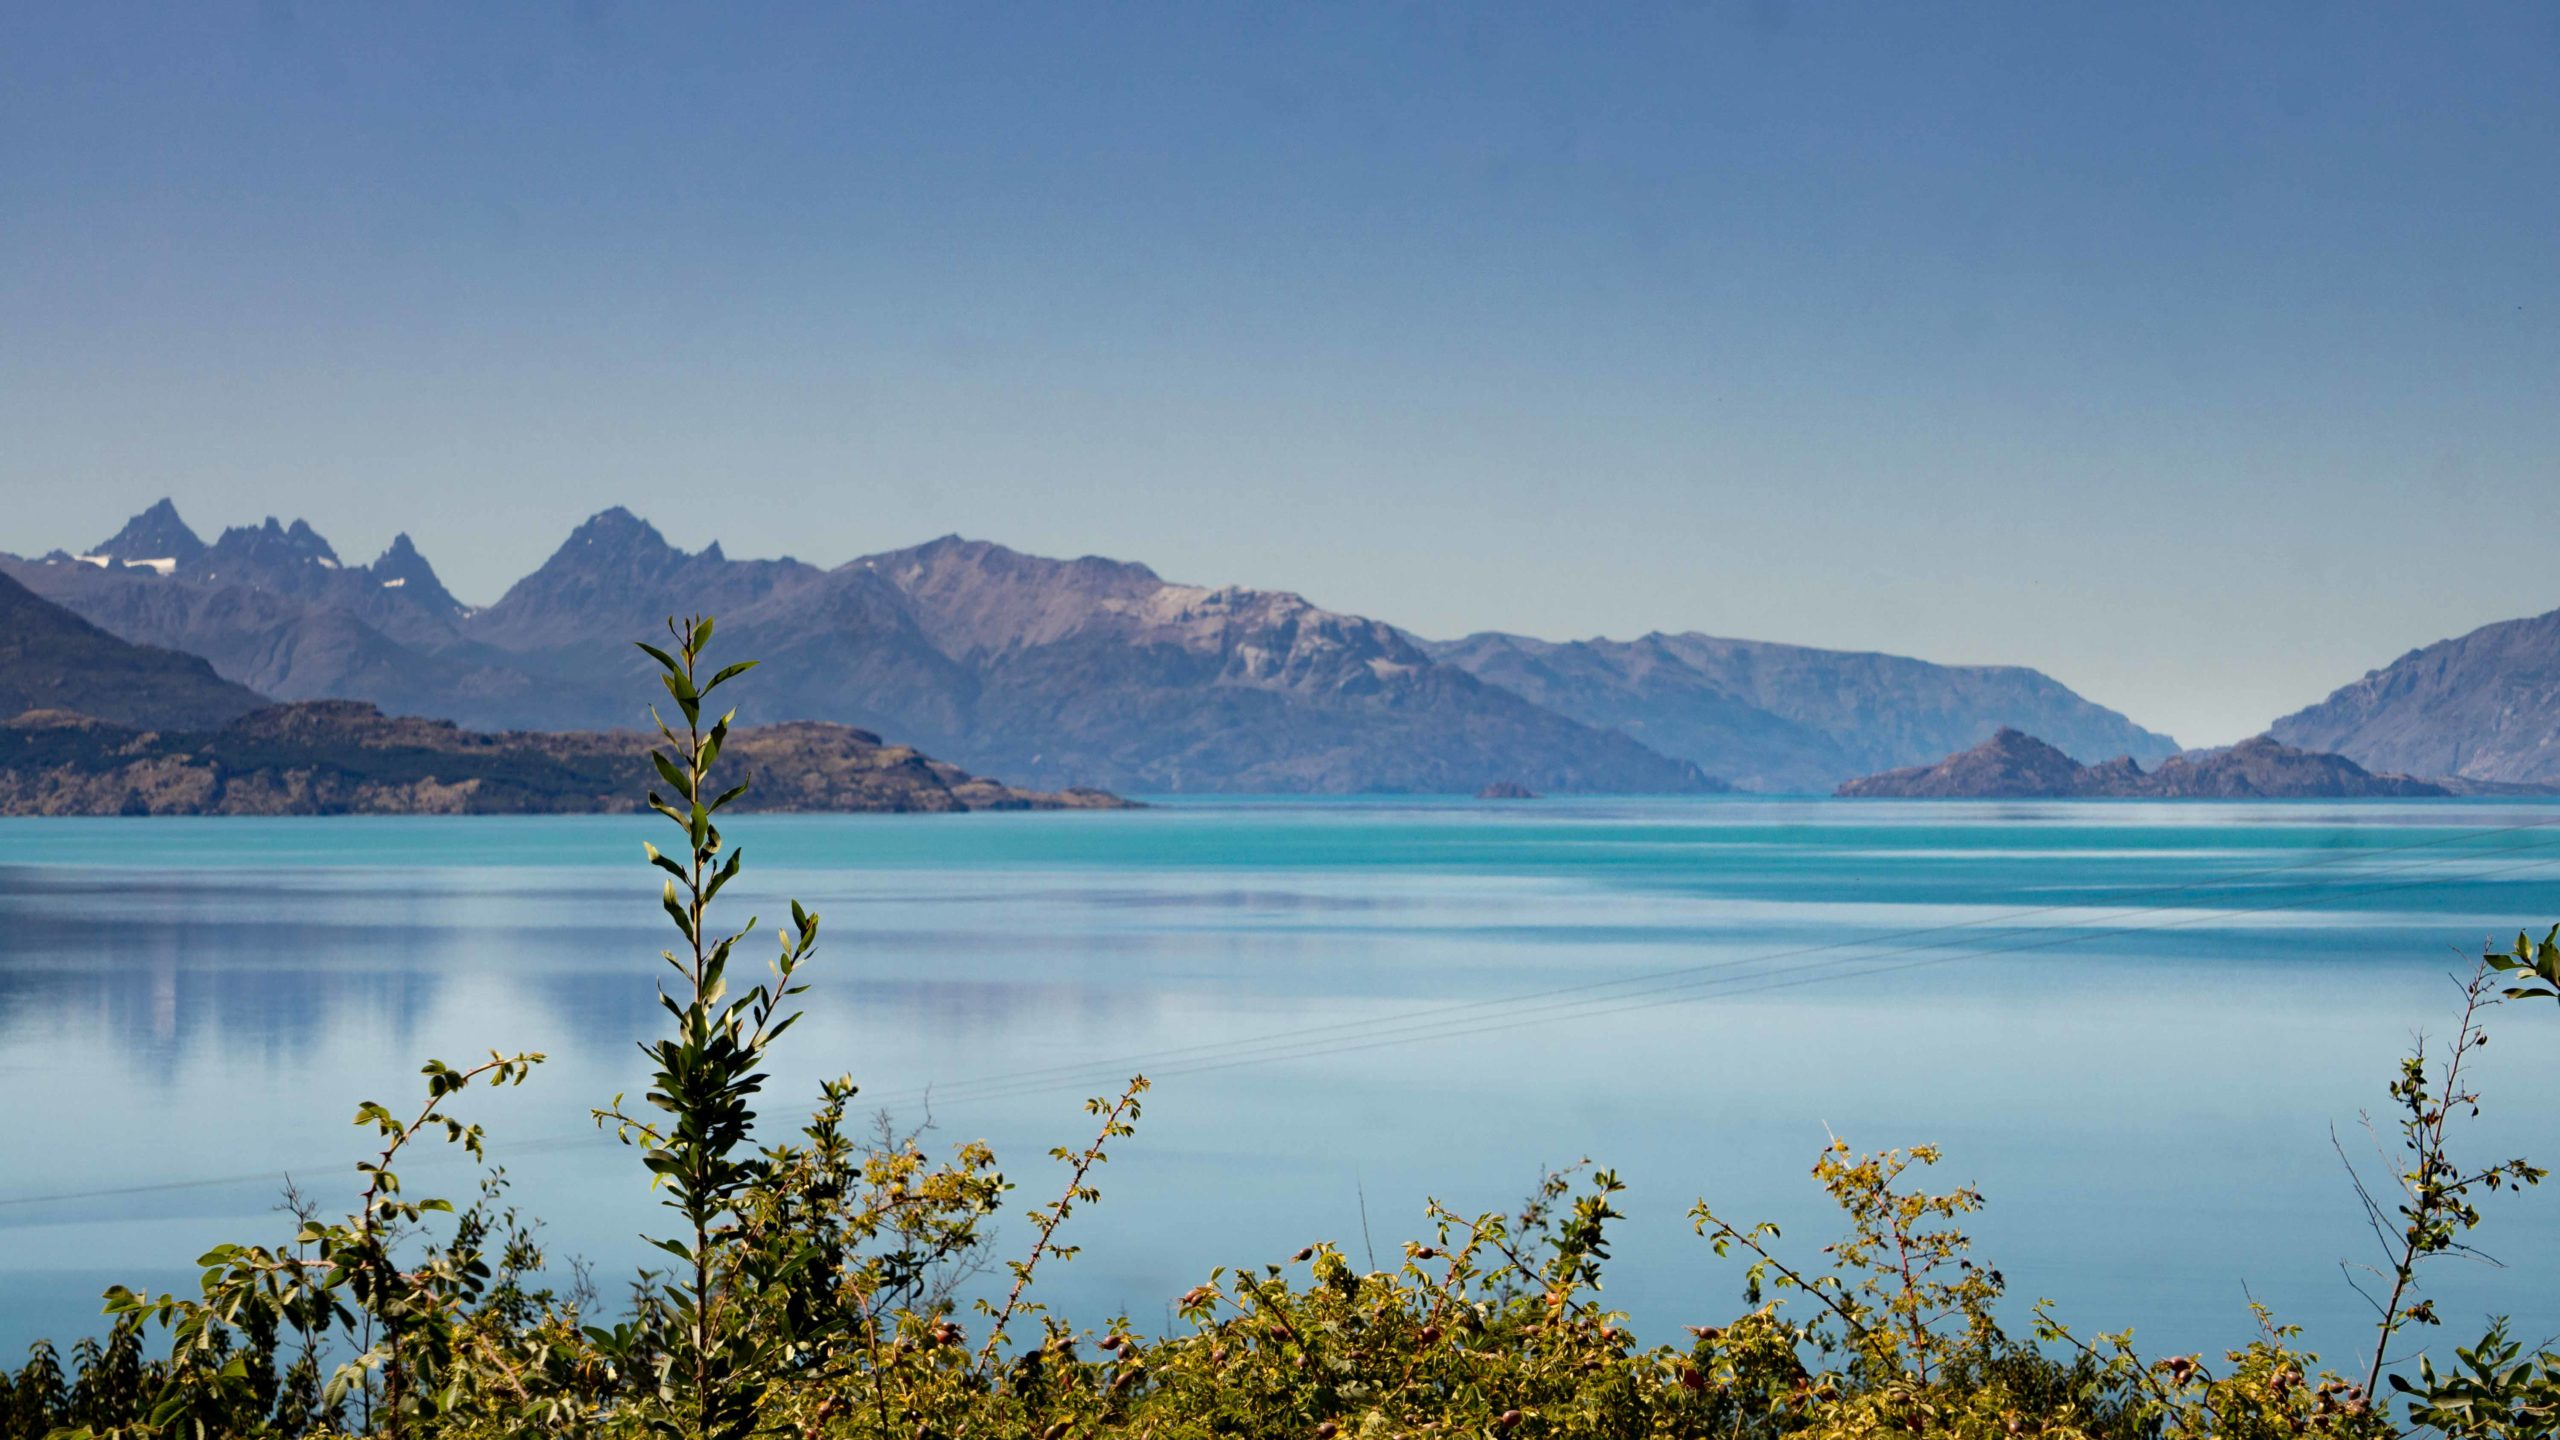 Cycle the Carretera Austral | The famous road through the heart of Chilean Patagonia 19